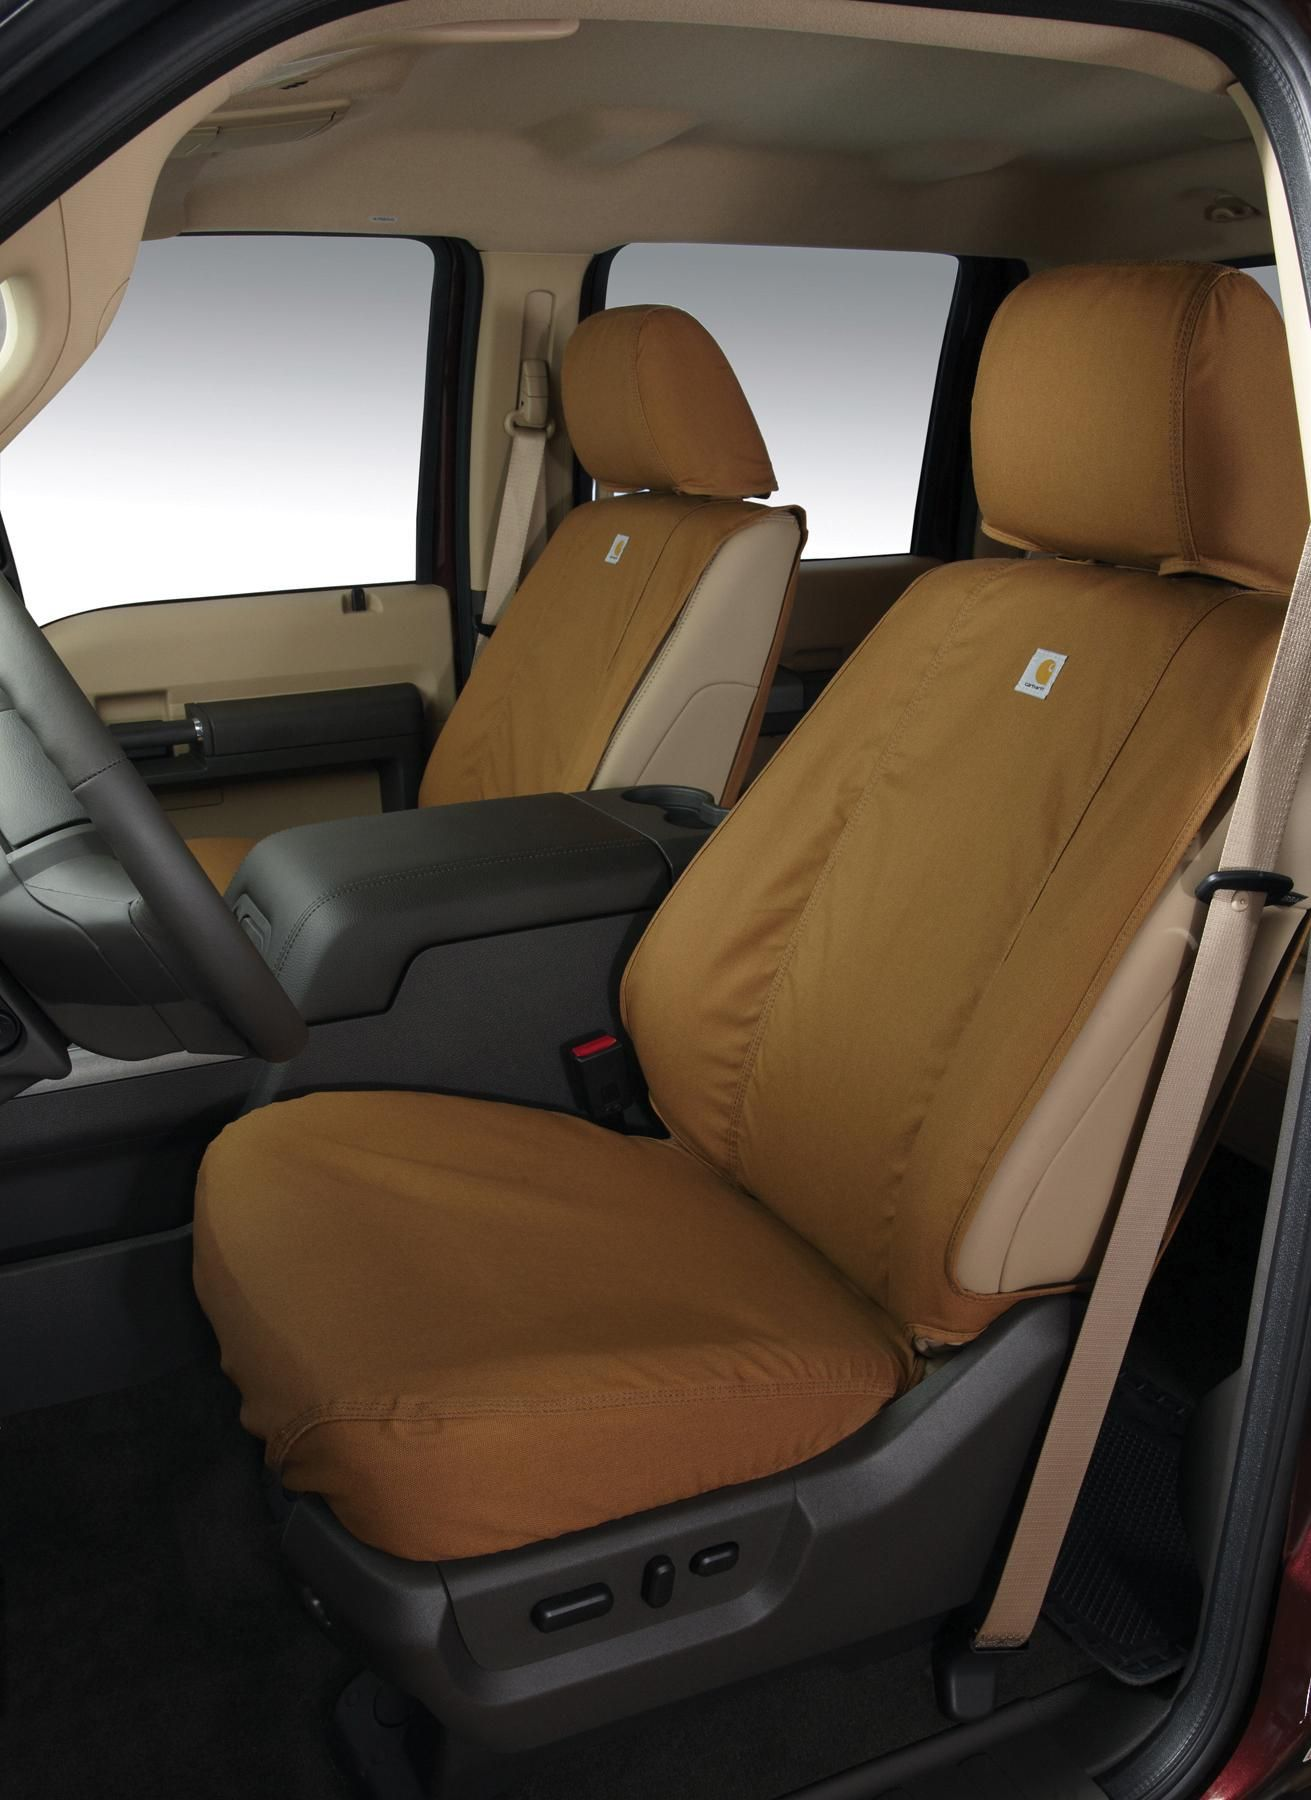 Seat Covers - Carhartt, Rear, Brown